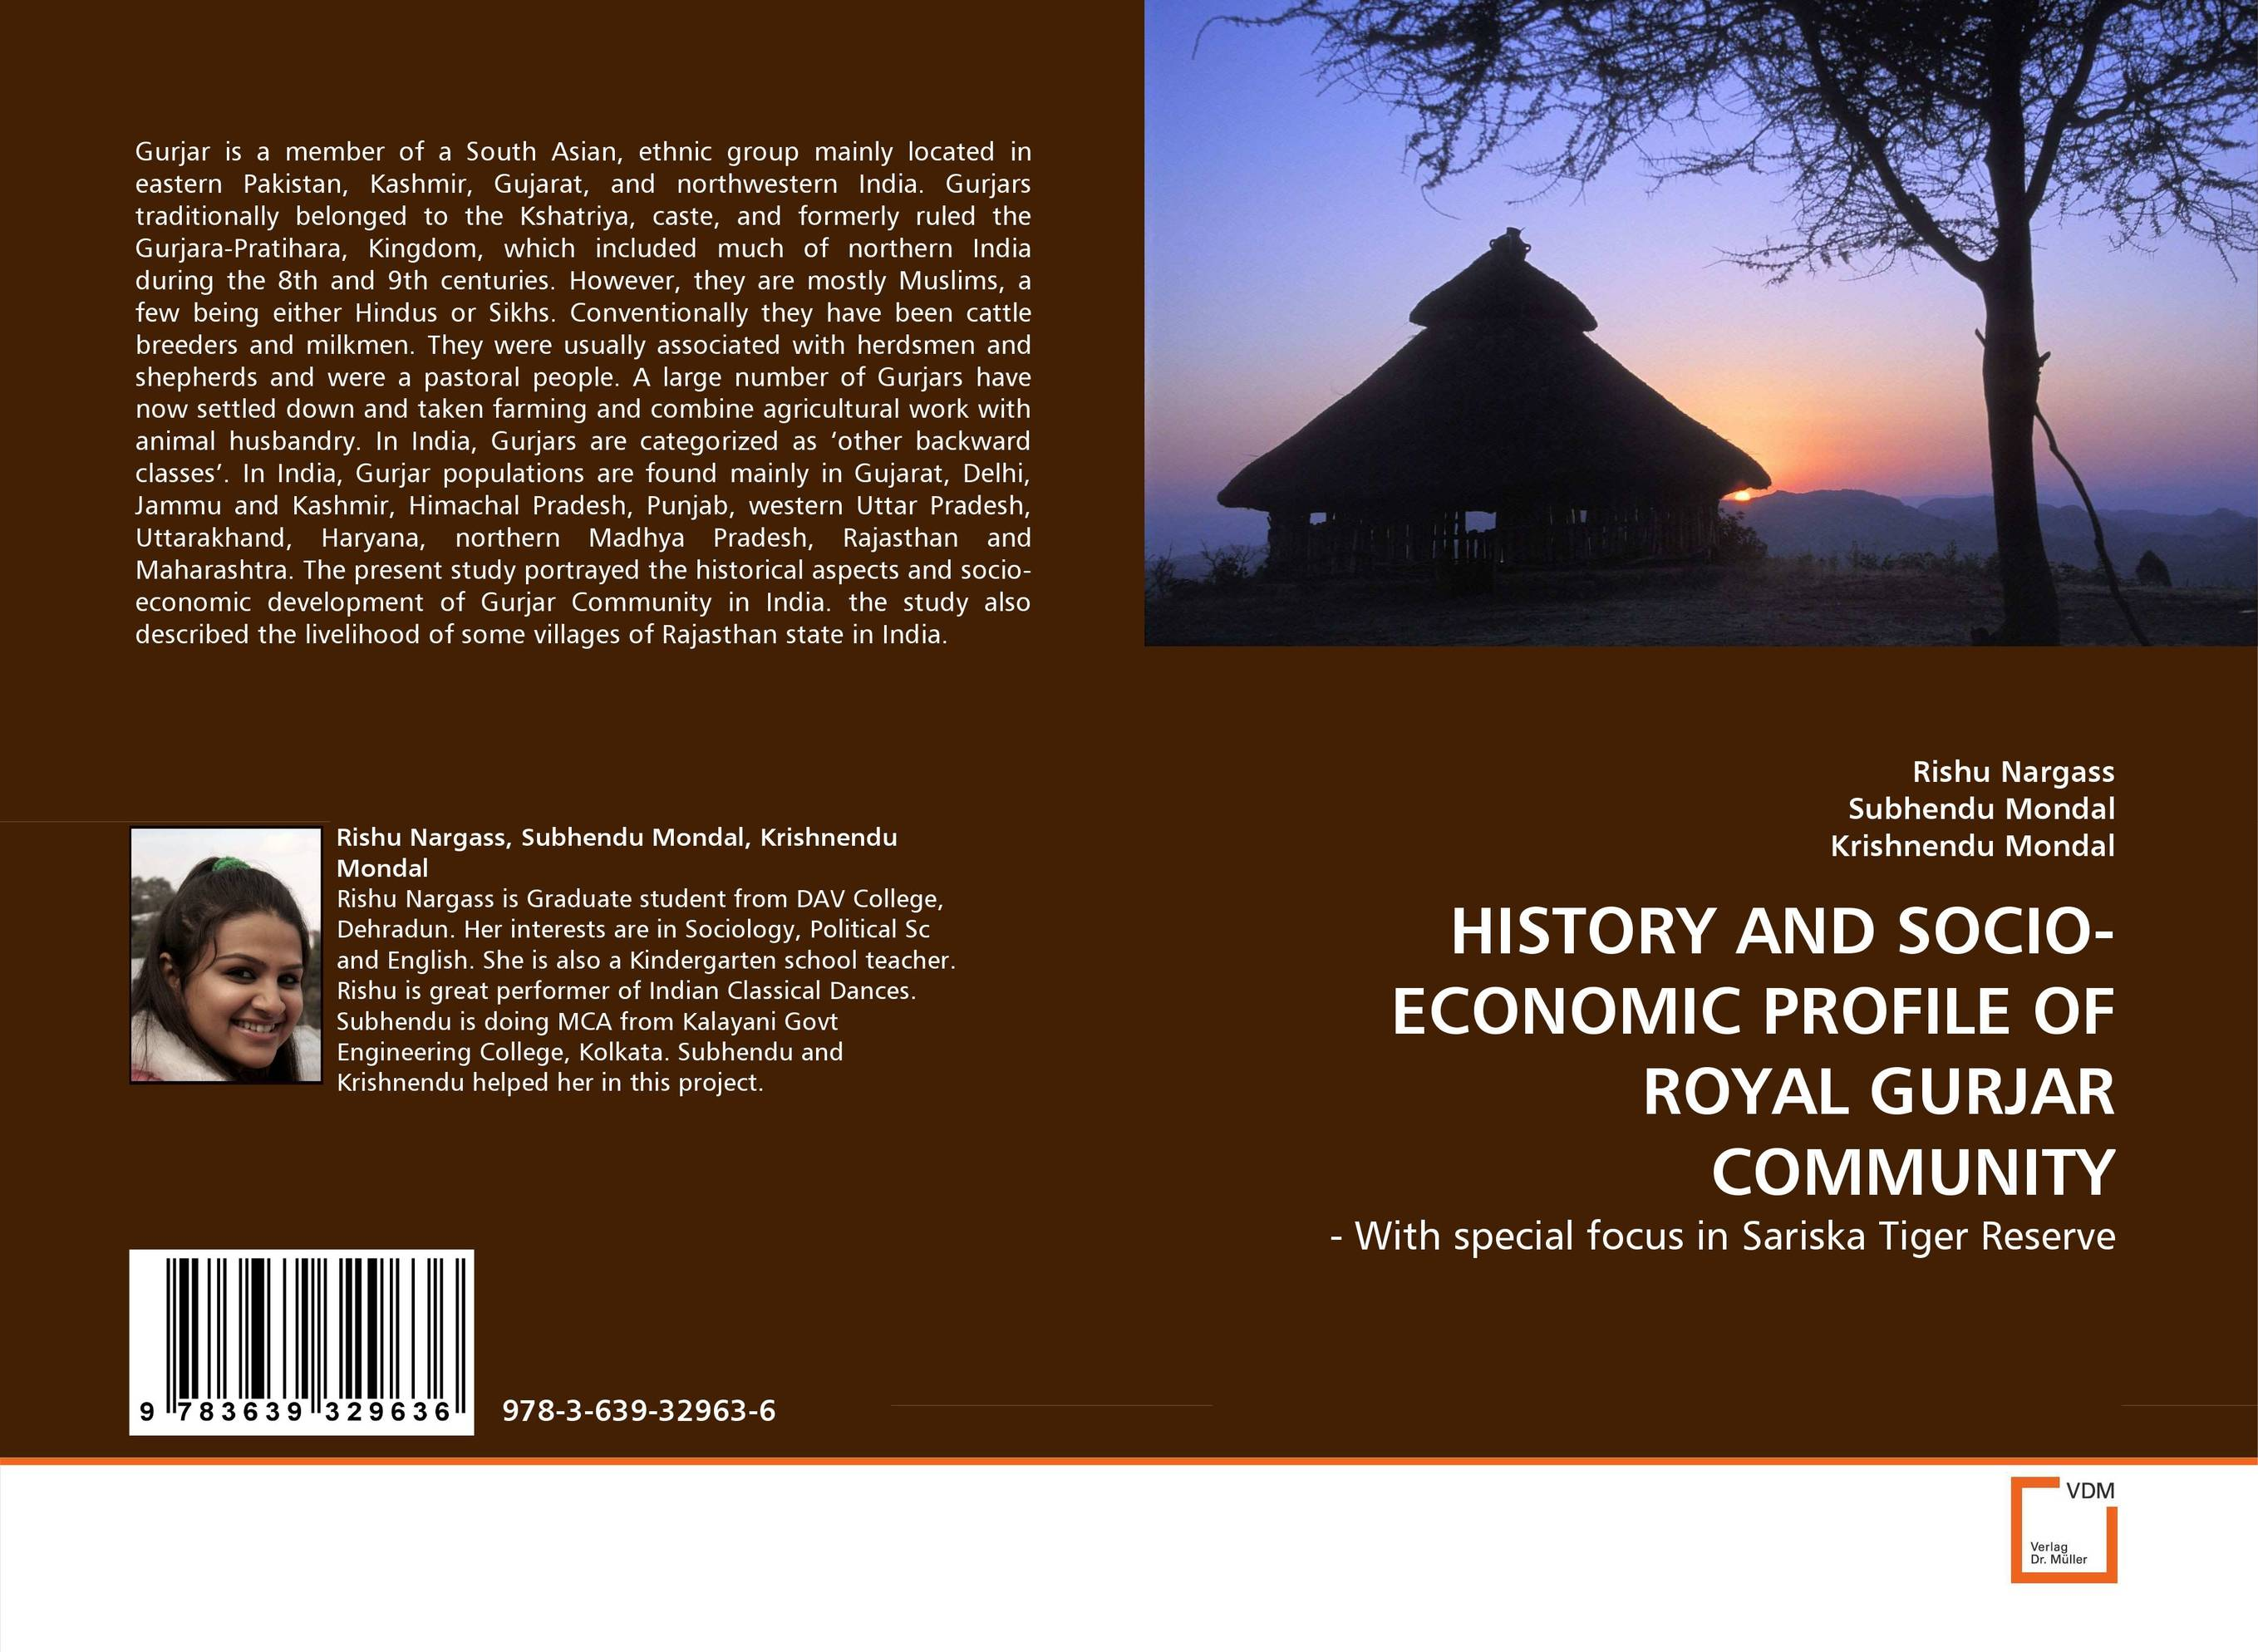 HISTORY AND SOCIO-ECONOMIC PROFILE OF ROYAL GURJAR COMMUNITY community resilience of village udekaran punjab india